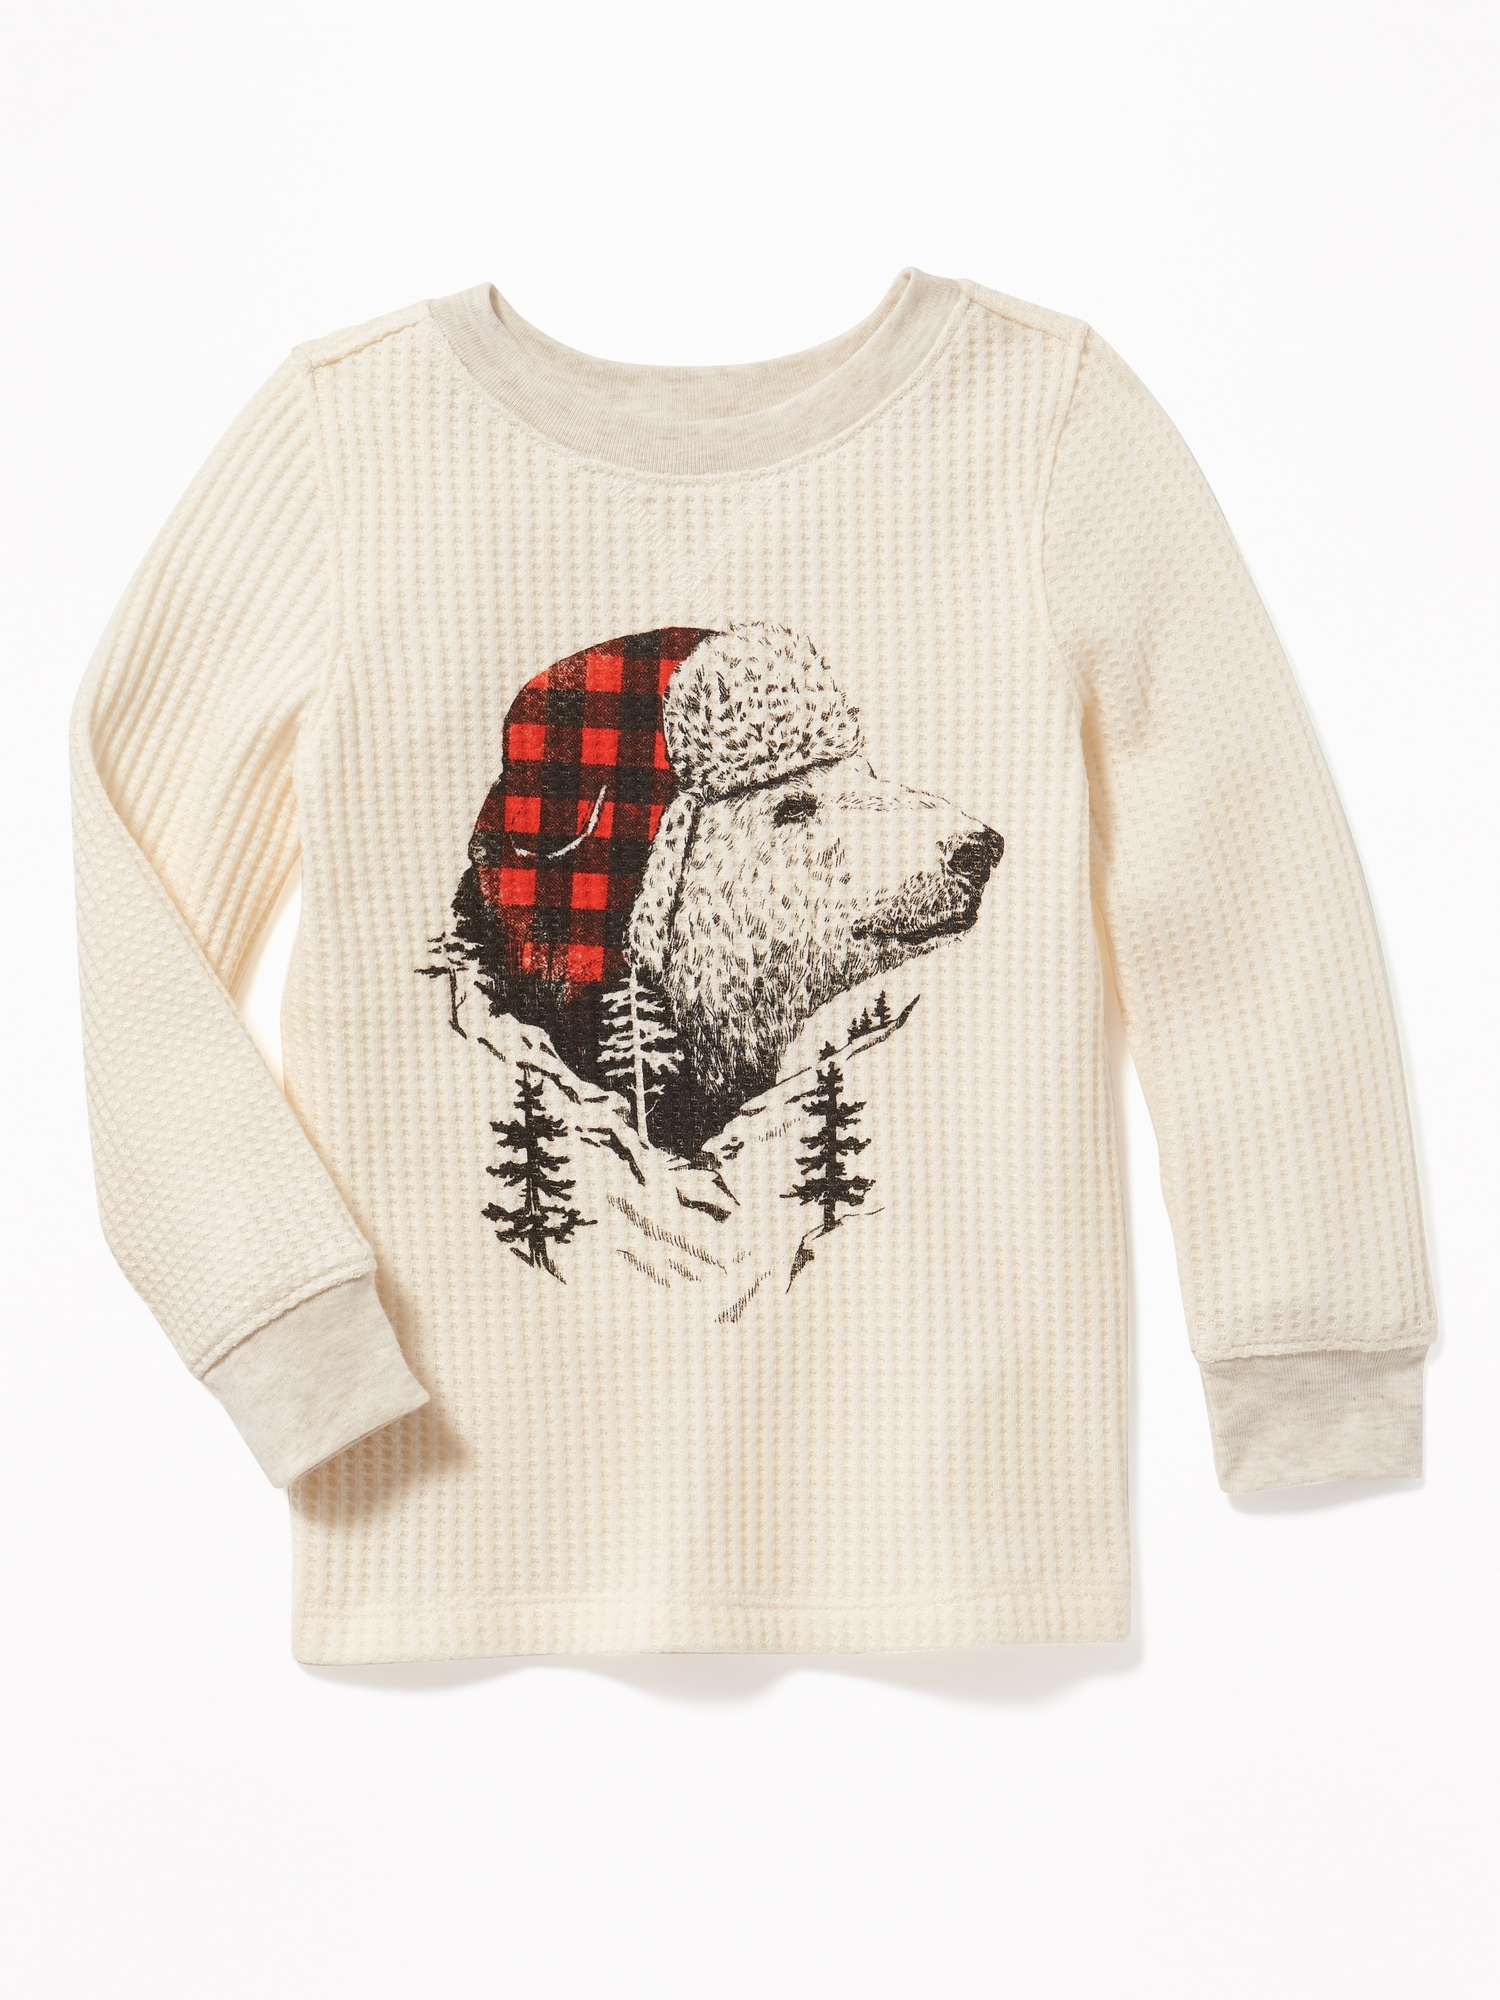 bafb143c0 Graphic Thermal Tee for Toddler Boys | Old Navy